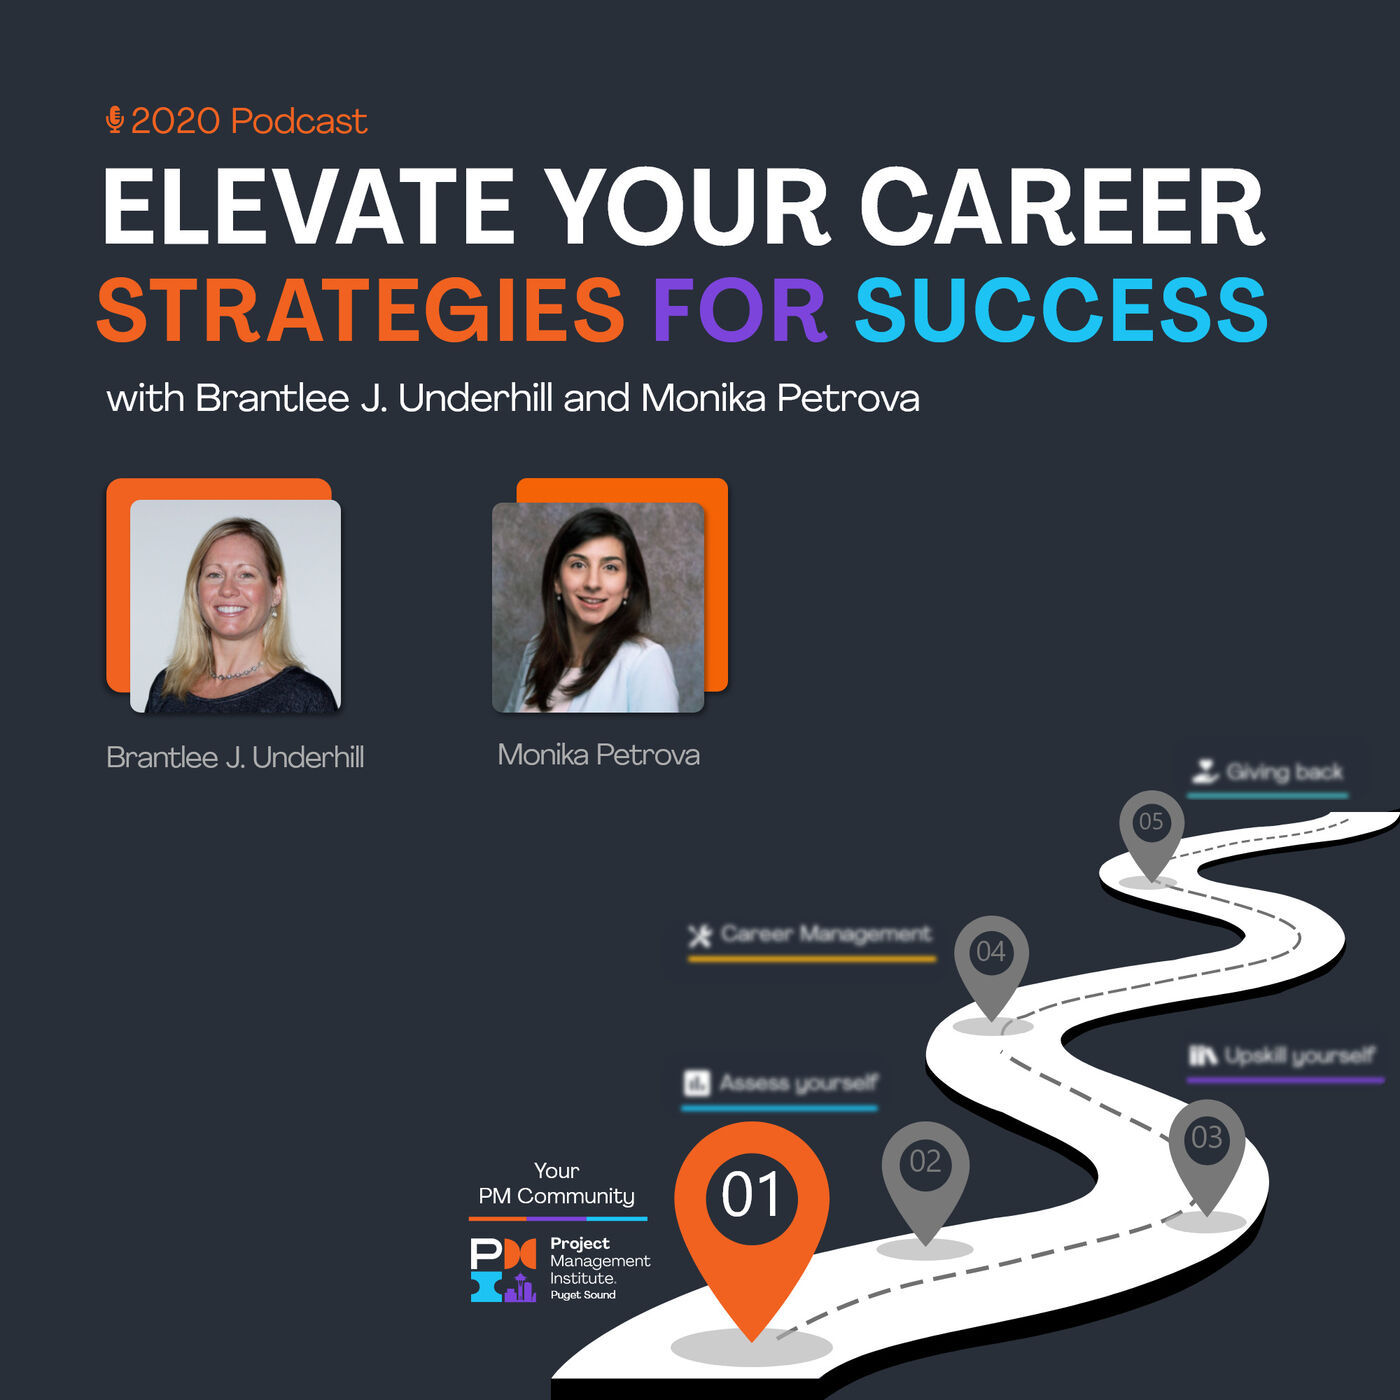 Elevate Your Career-Strategies for Success with Brantlee J Underhill and Monika Petrova